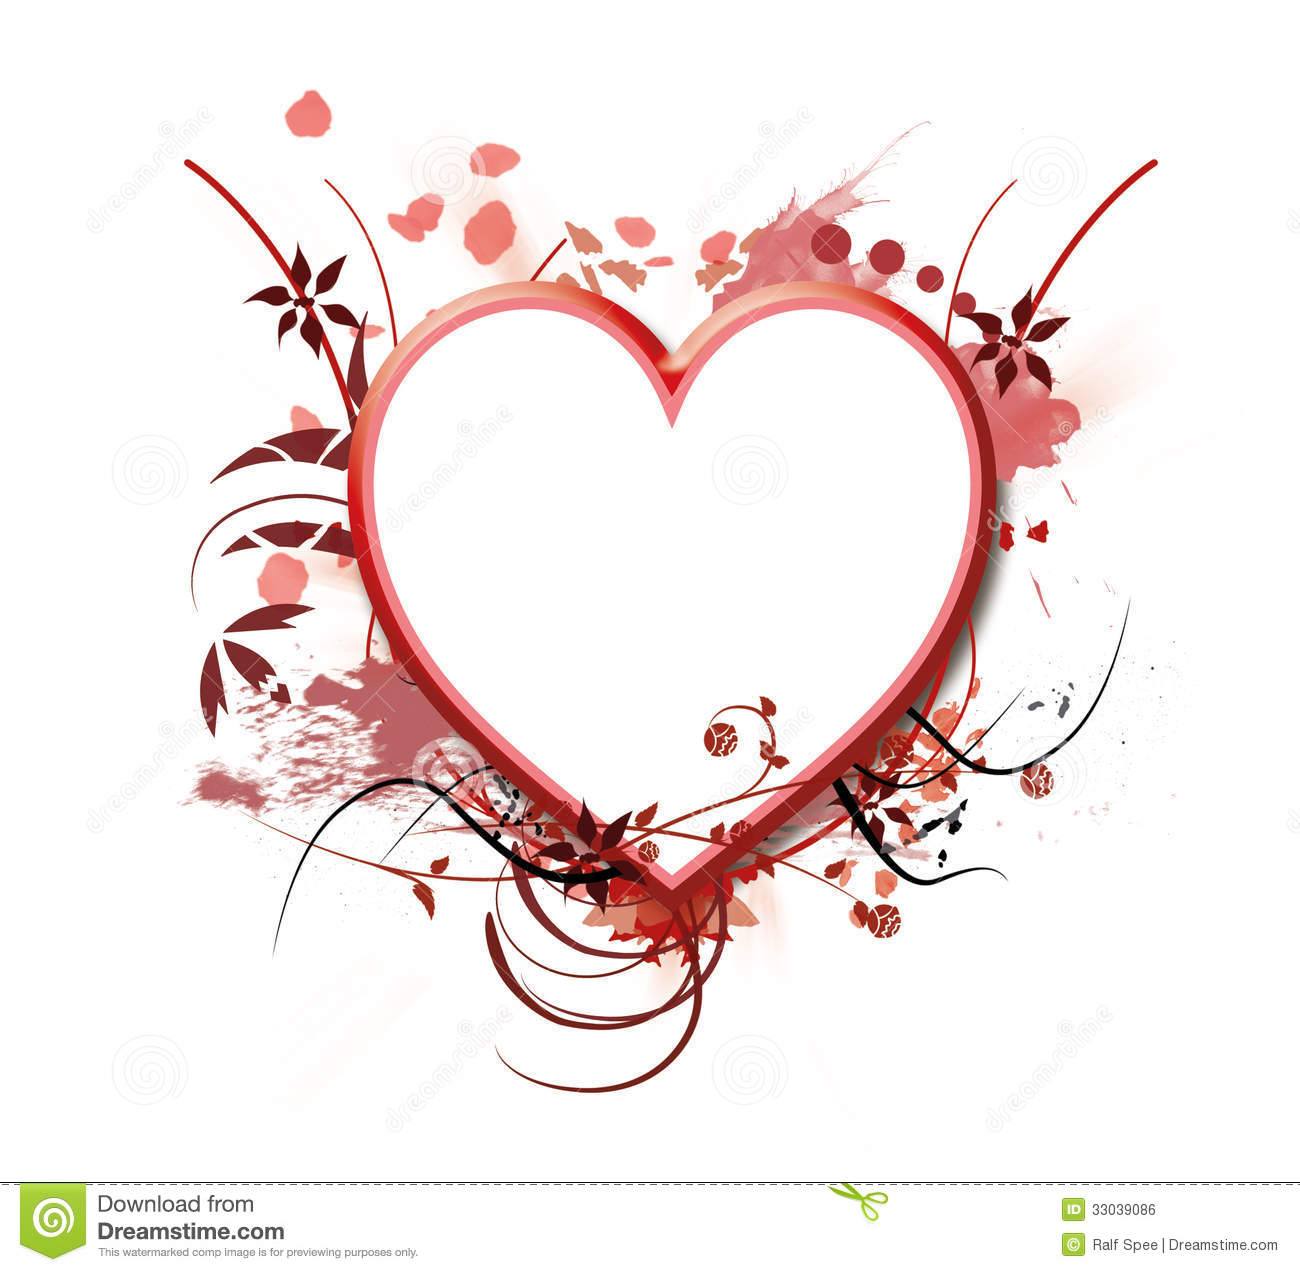 Heart Frame Royalty Free Stock Image - Image: 33039086